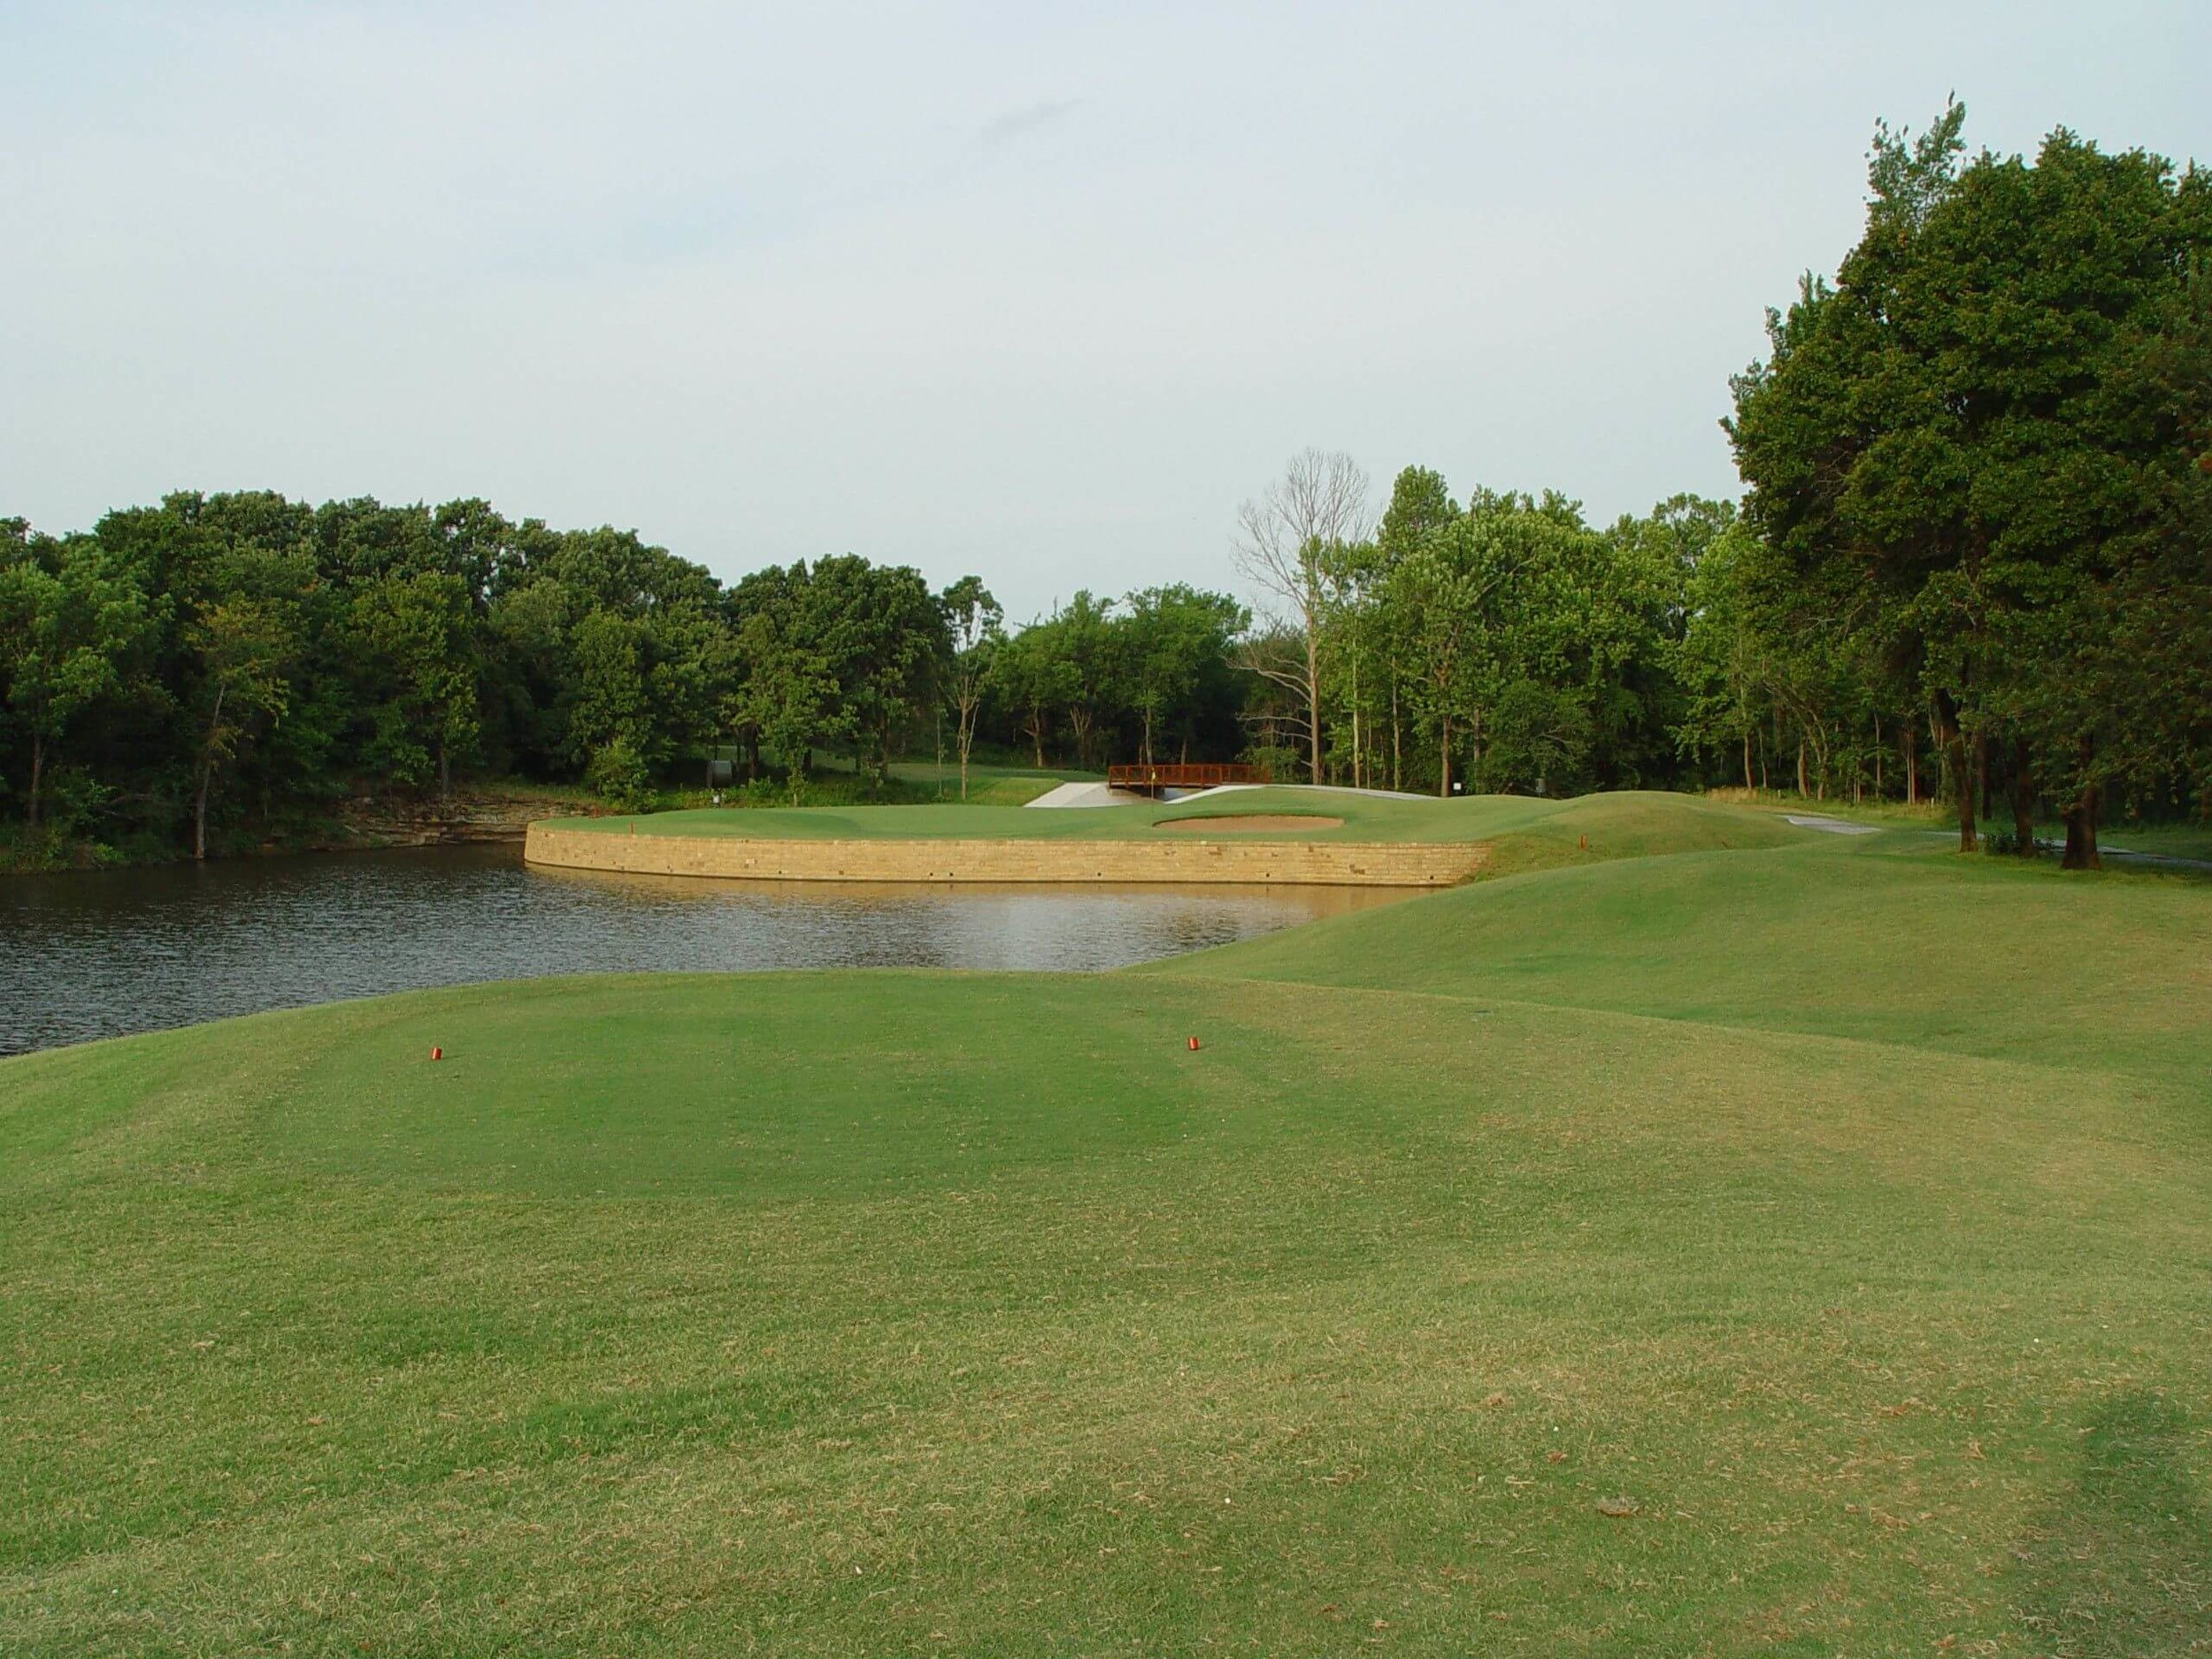 Forest%20Ridge%20Hole%2015a.jpg